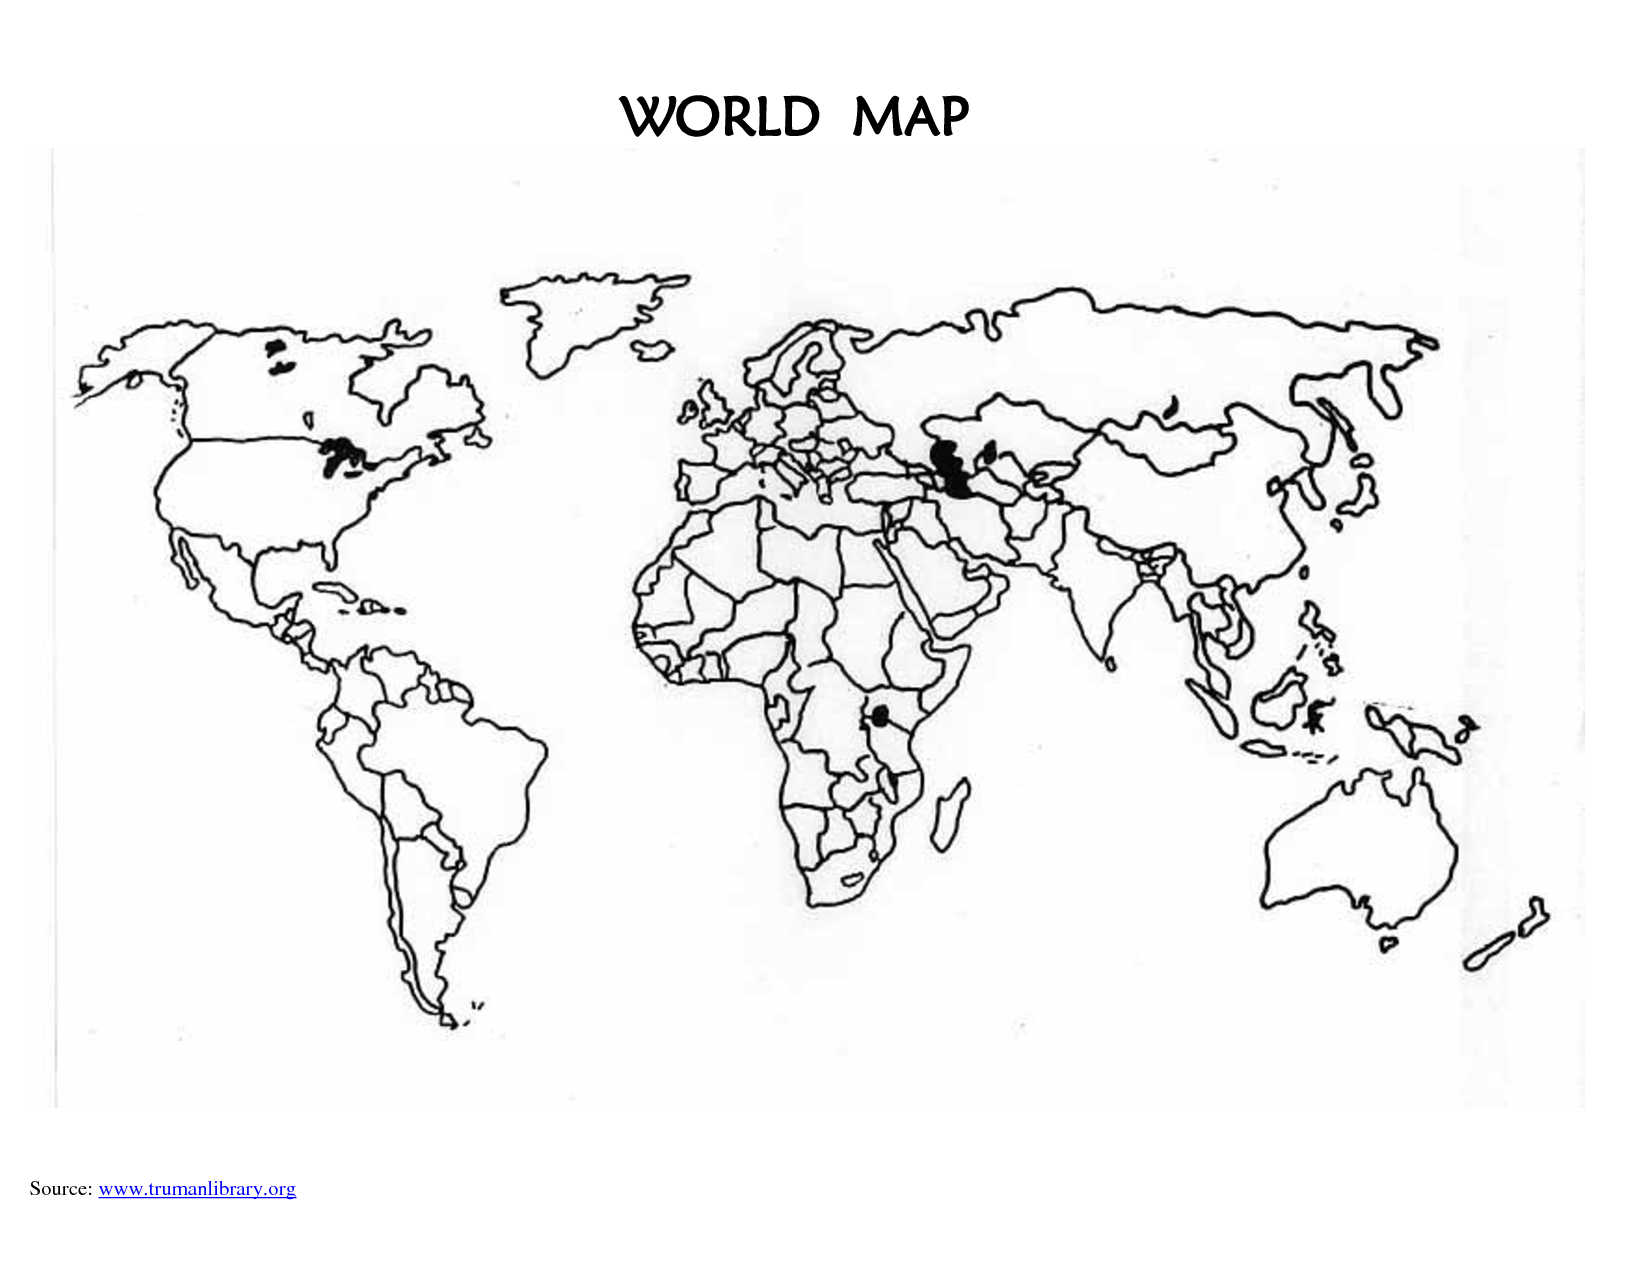 Printable Blank World Map Countries | Design ideas | Pinterest ...